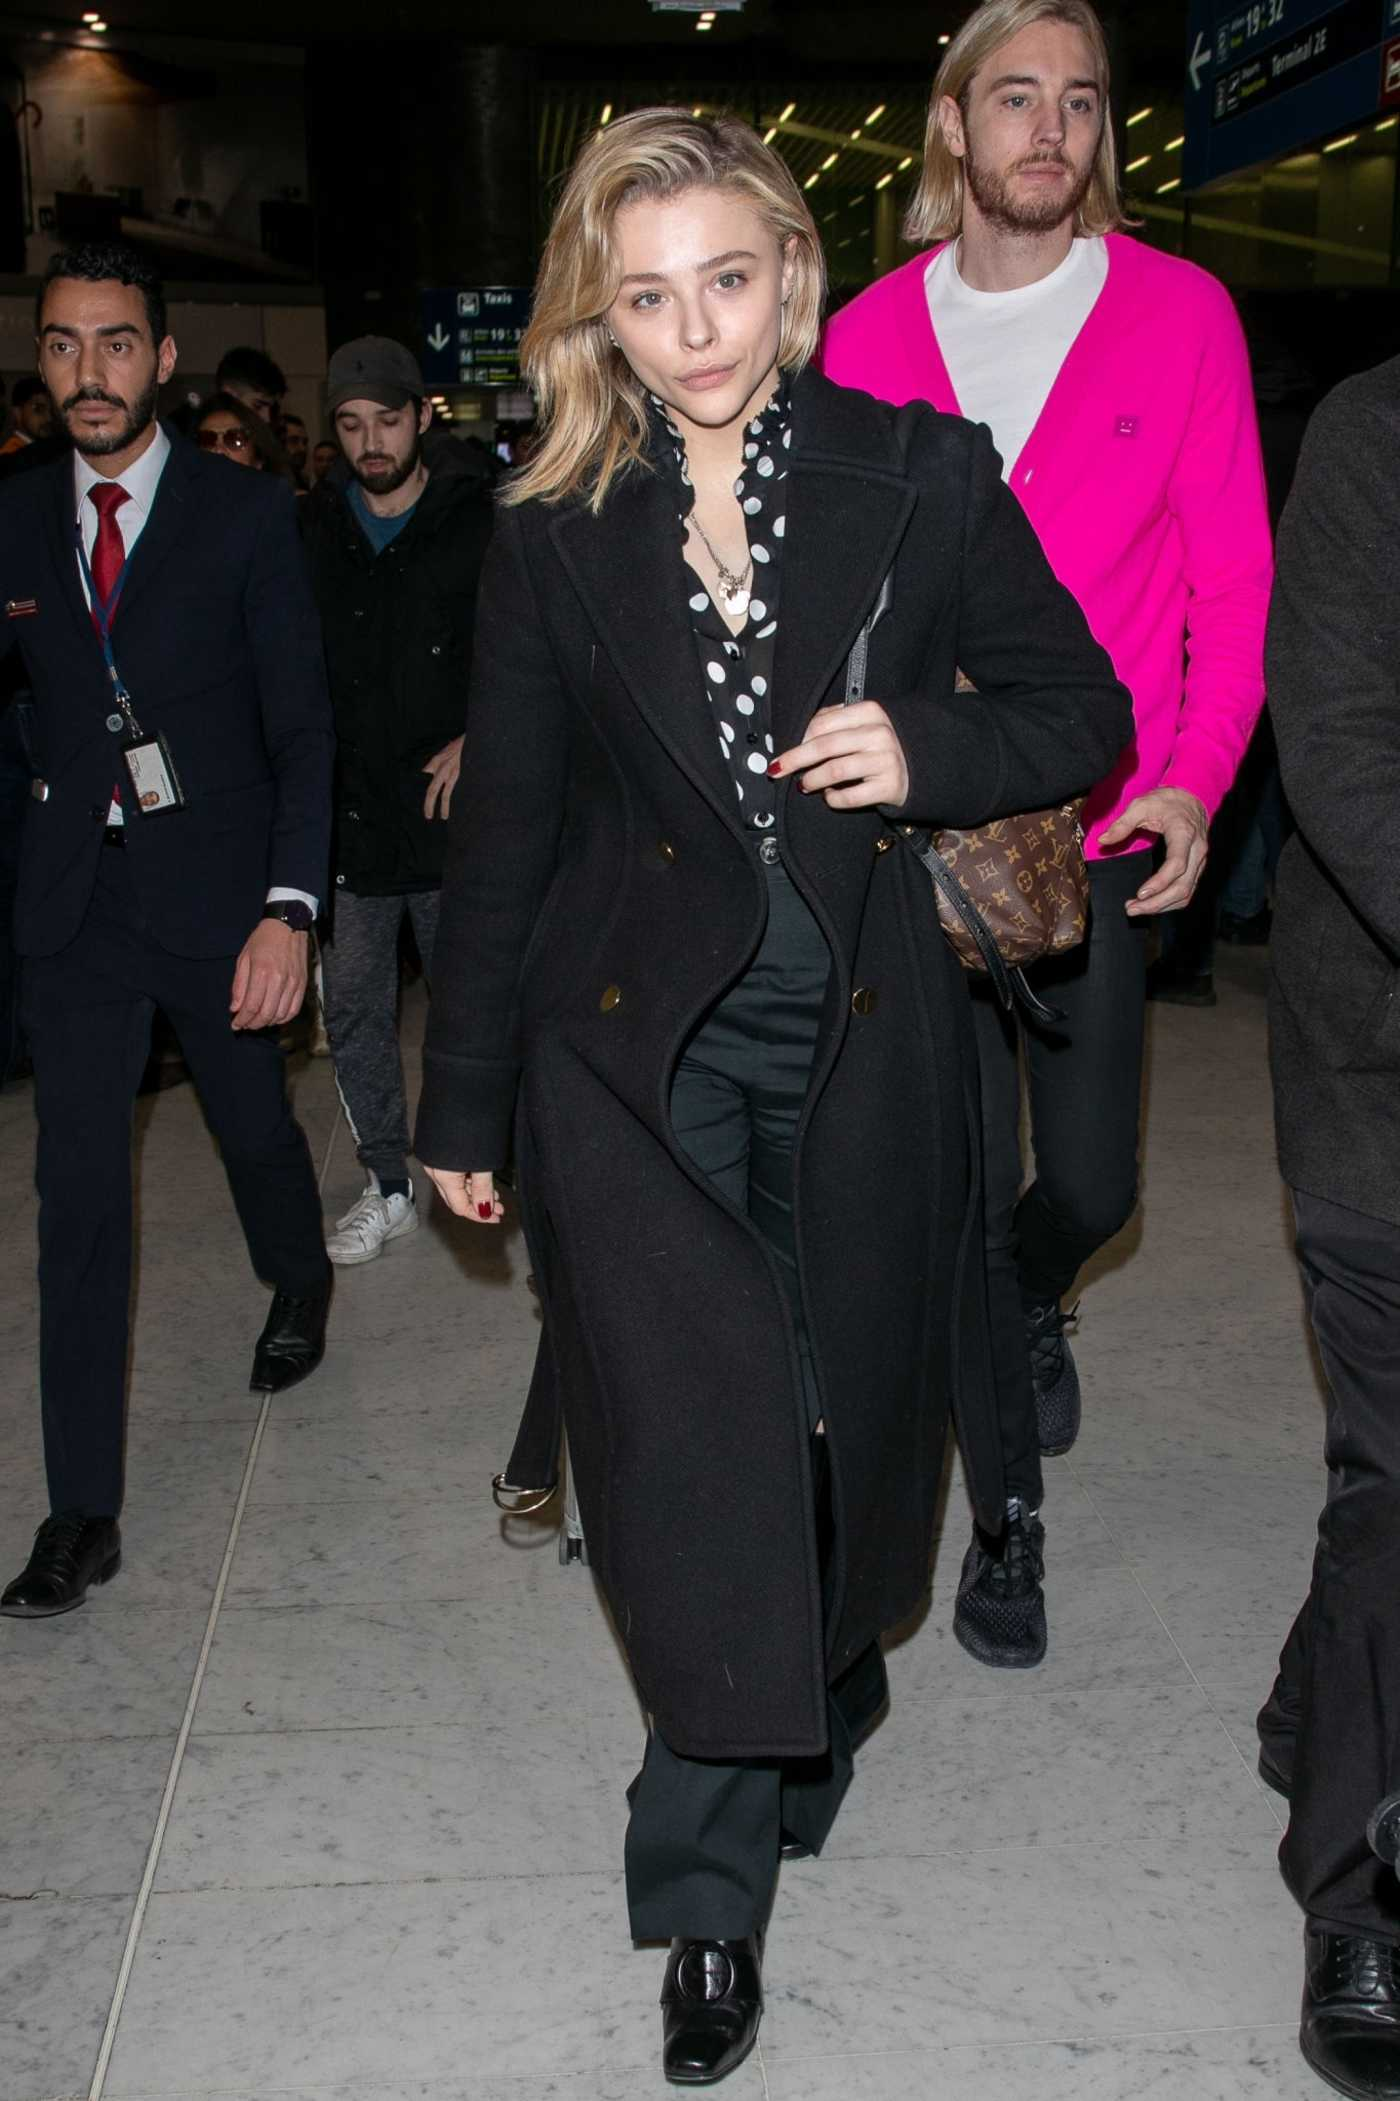 Chloe Moretz in a Black Coat Arrives at the CDG Airport in Paris 03/03/2019